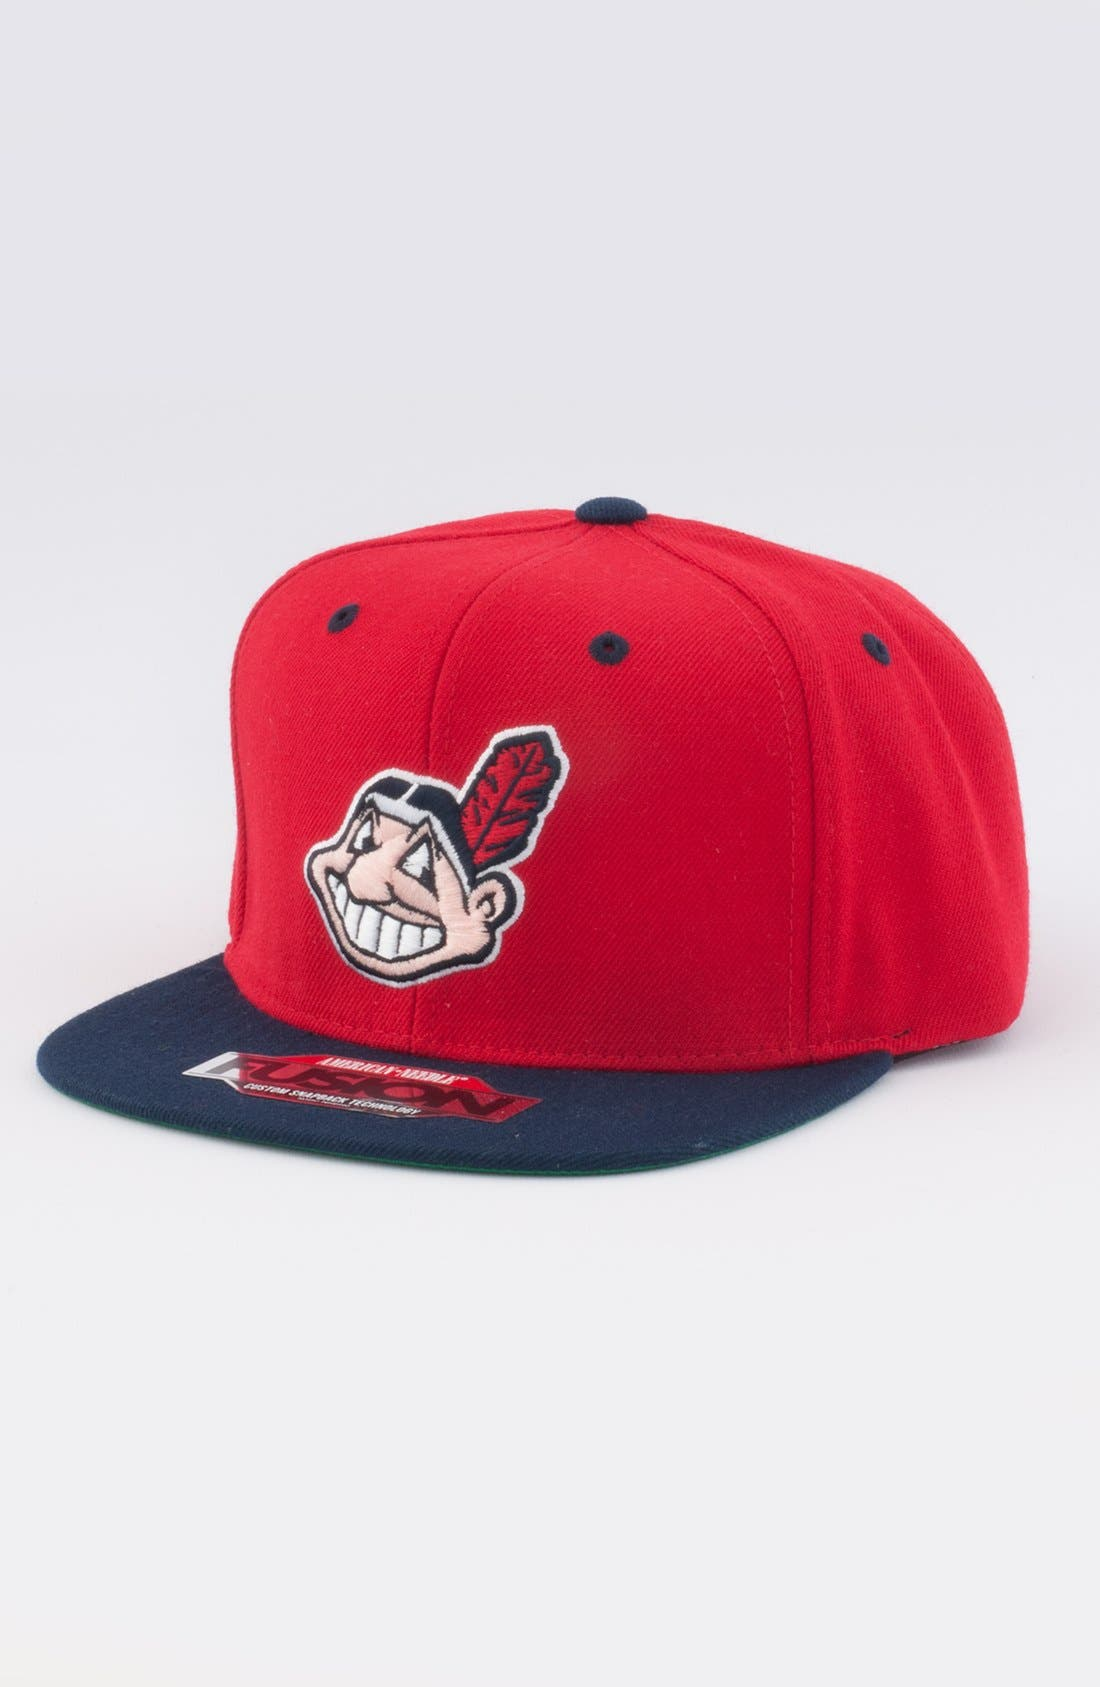 Alternate Image 1 Selected - American Needle 'Cleveland Indians - Back 2 Front' Snapback Baseball Cap